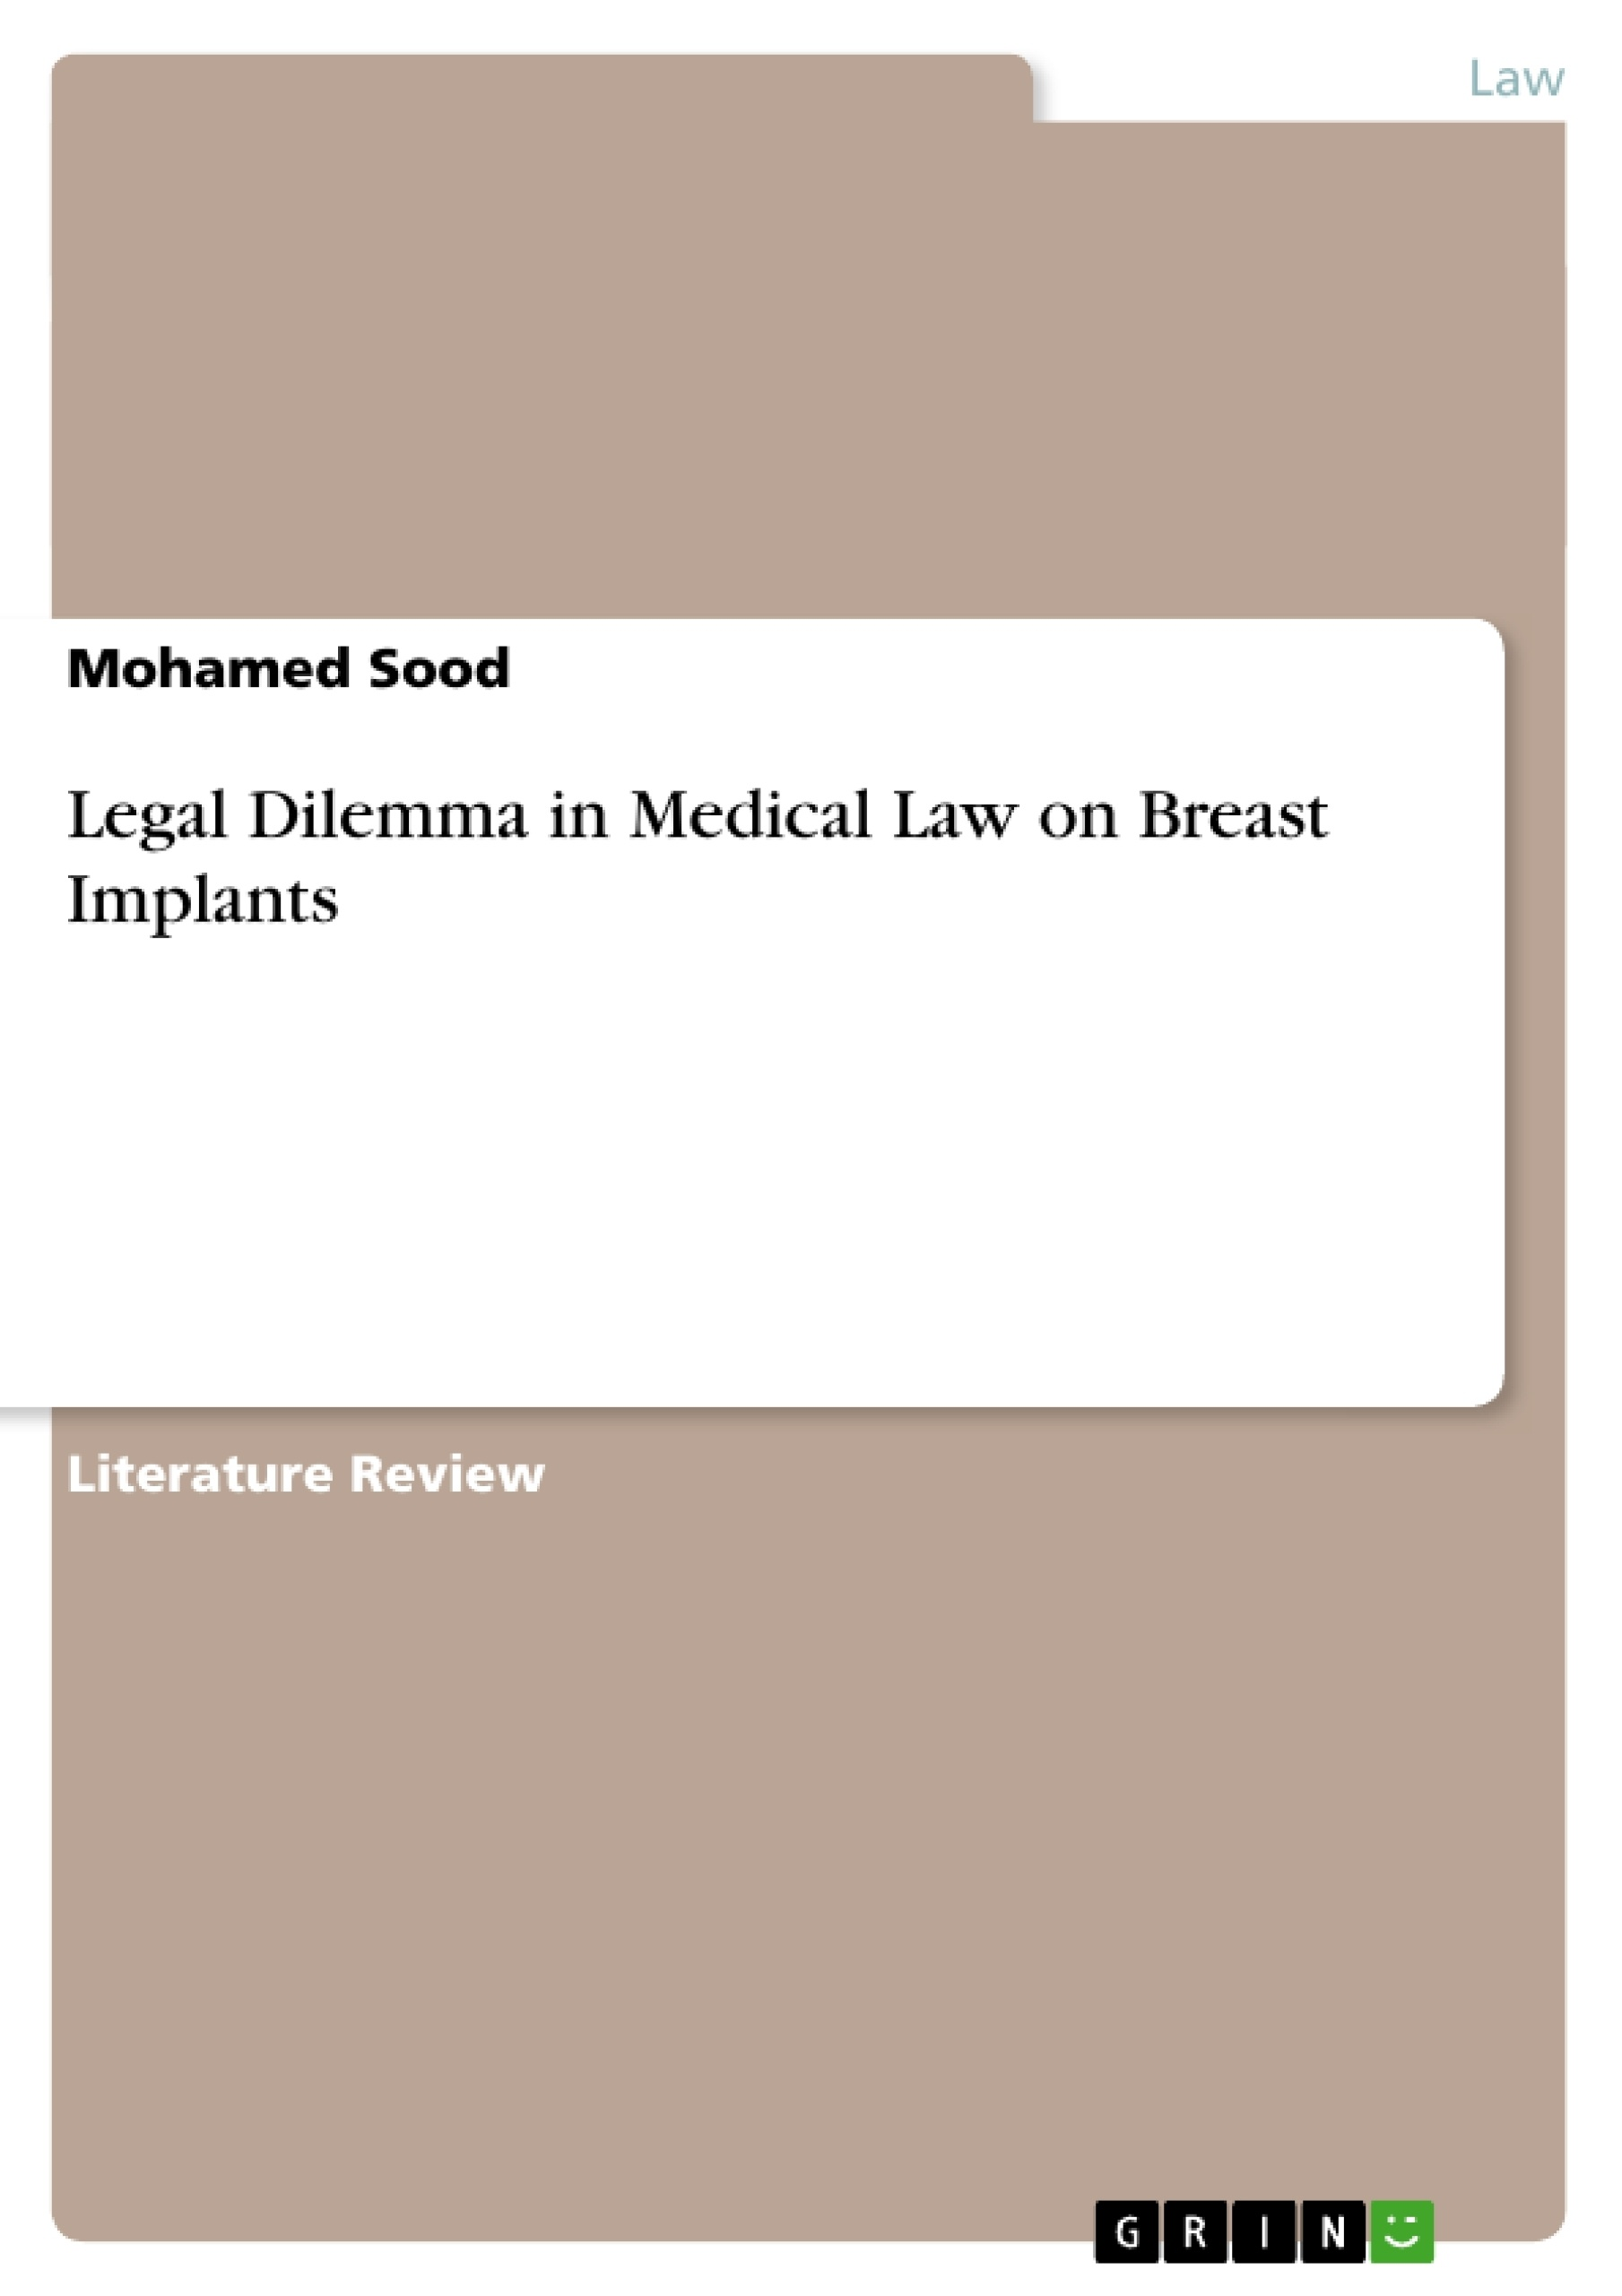 Title: Legal Dilemma in Medical Law on Breast Implants